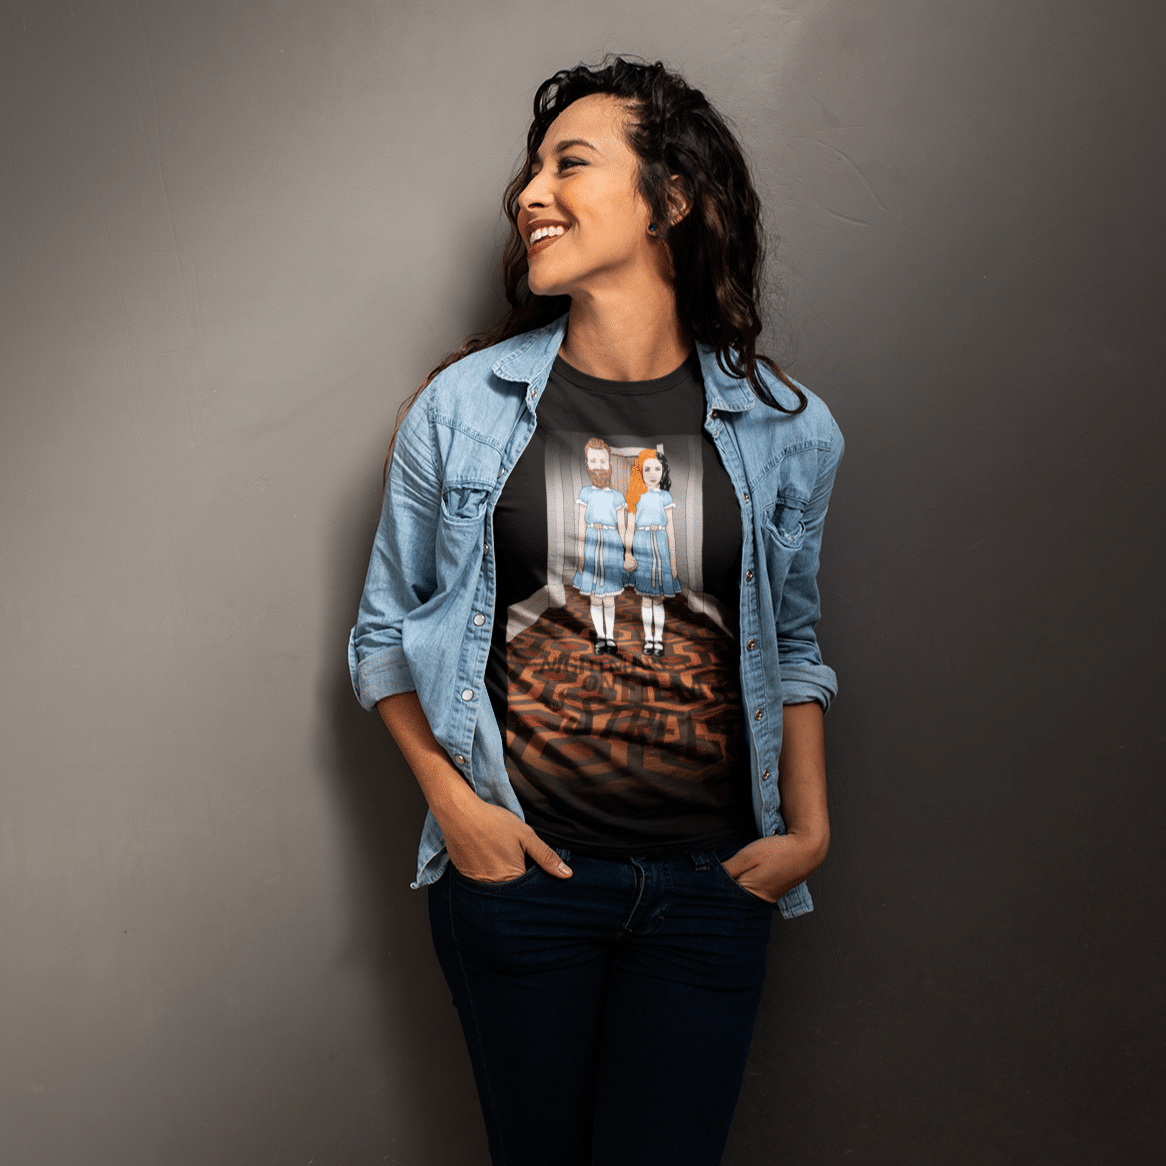 mockup-of-a-woman-casually-leaning-on-a-wall-wearing-a-t-shirt-24653.png